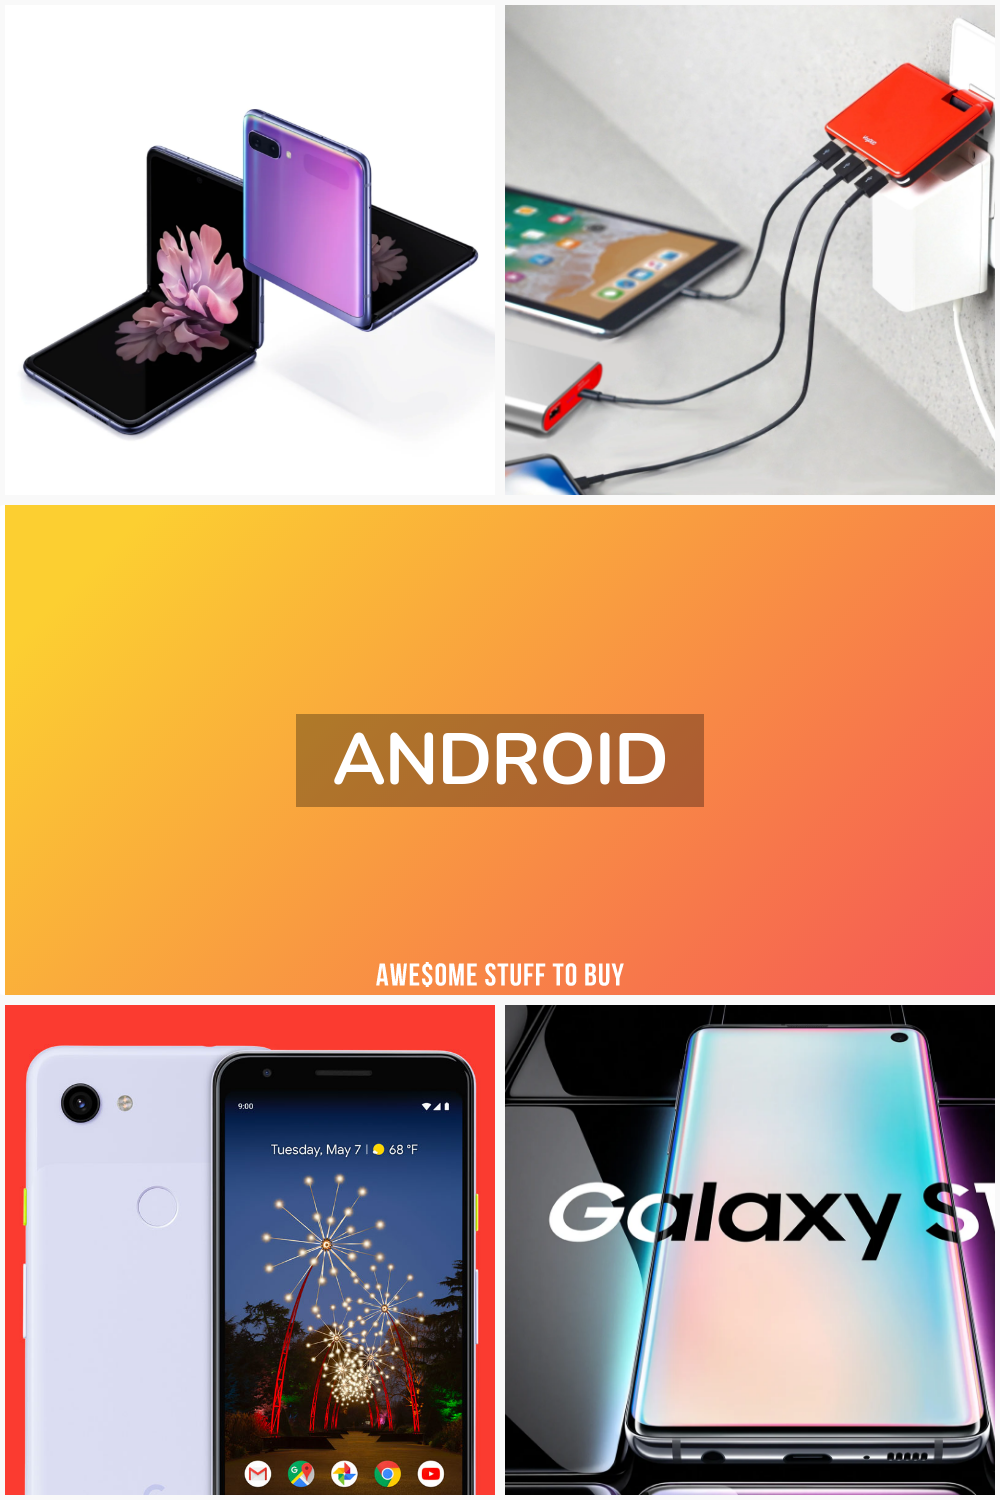 Android // Awesome Stuff to Buy